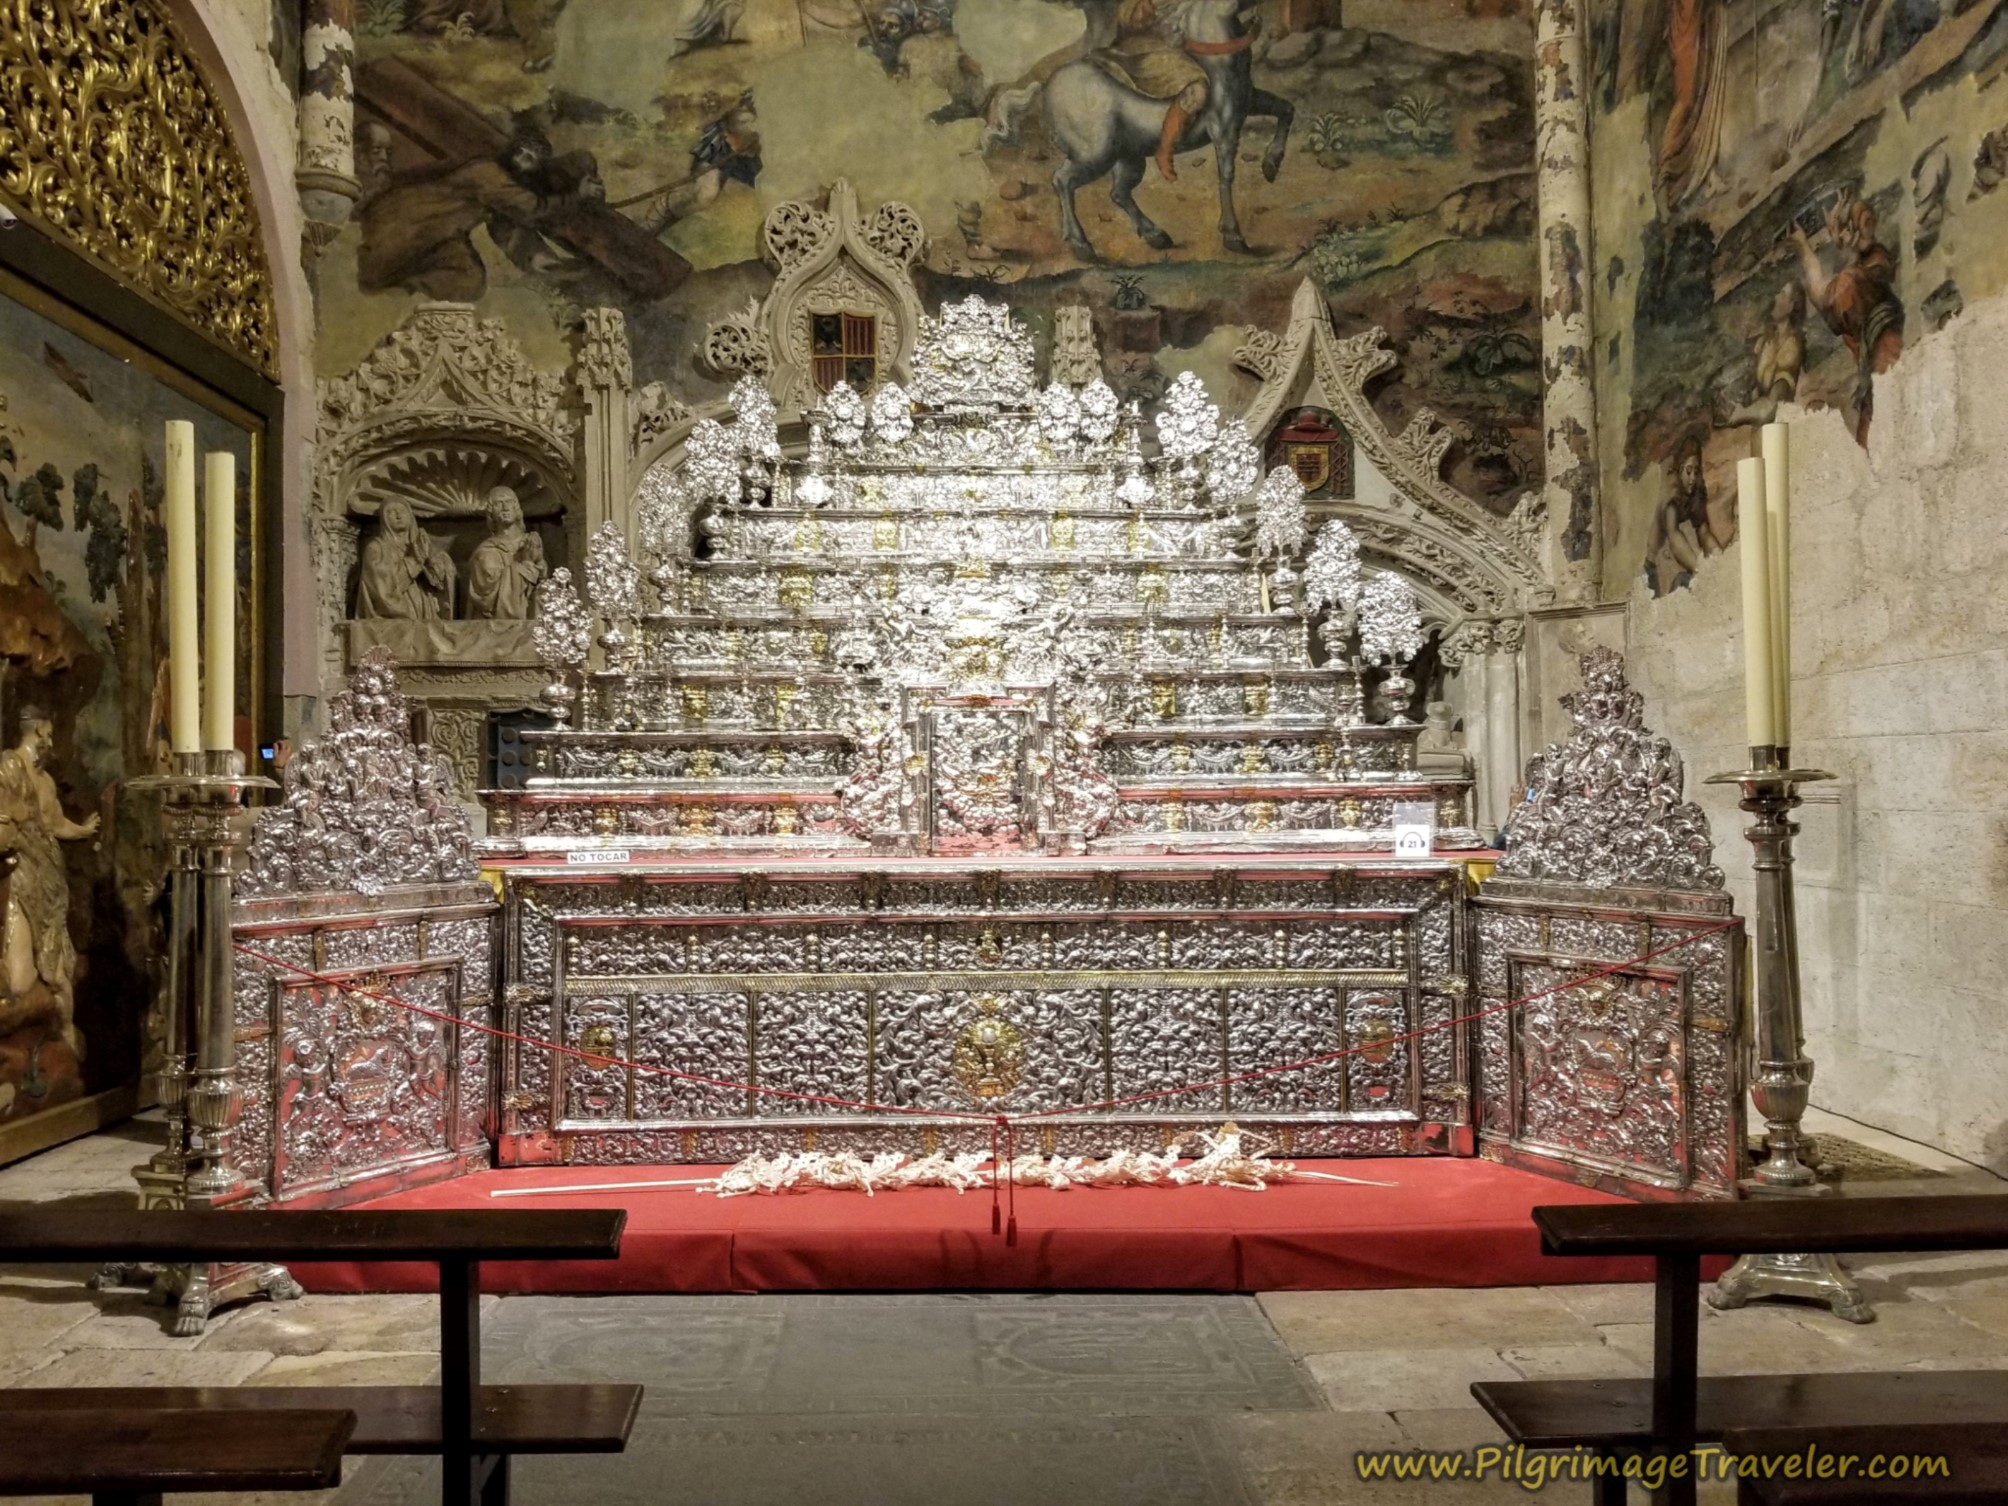 Silver Altarpiece, Chapel of San Ildefonso, Cathedral of Zamora, Spain